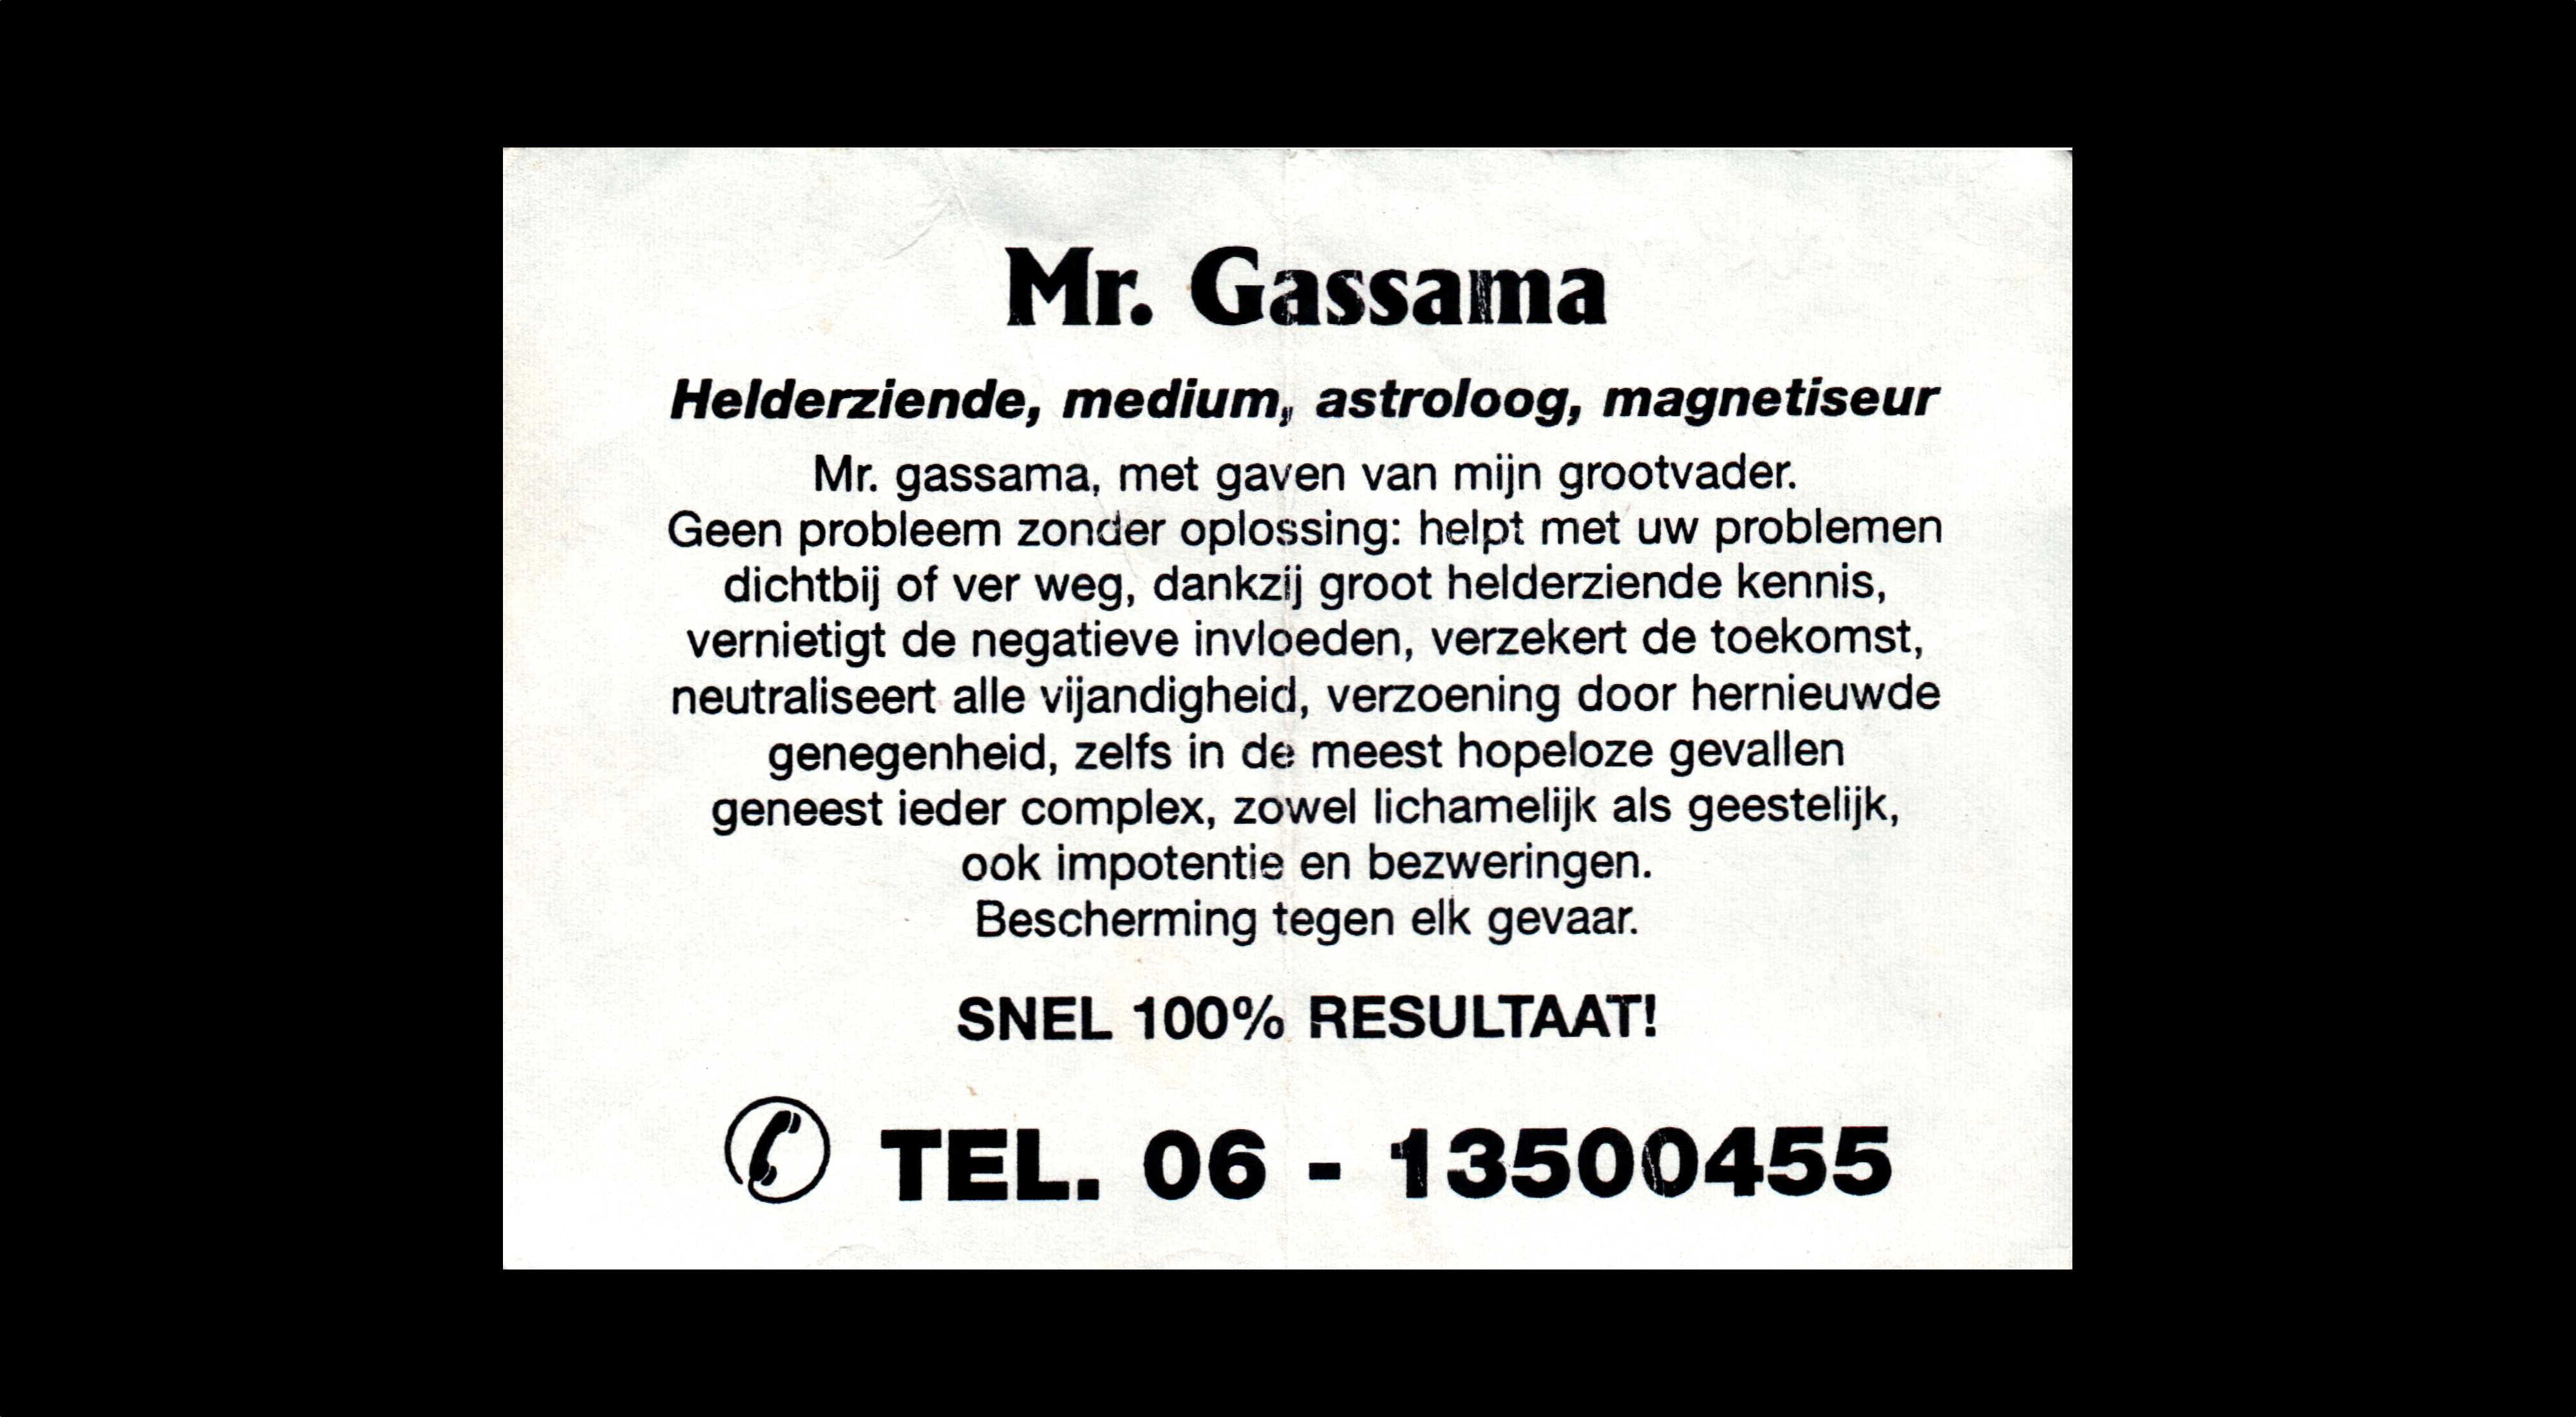 card of Mr Gassama